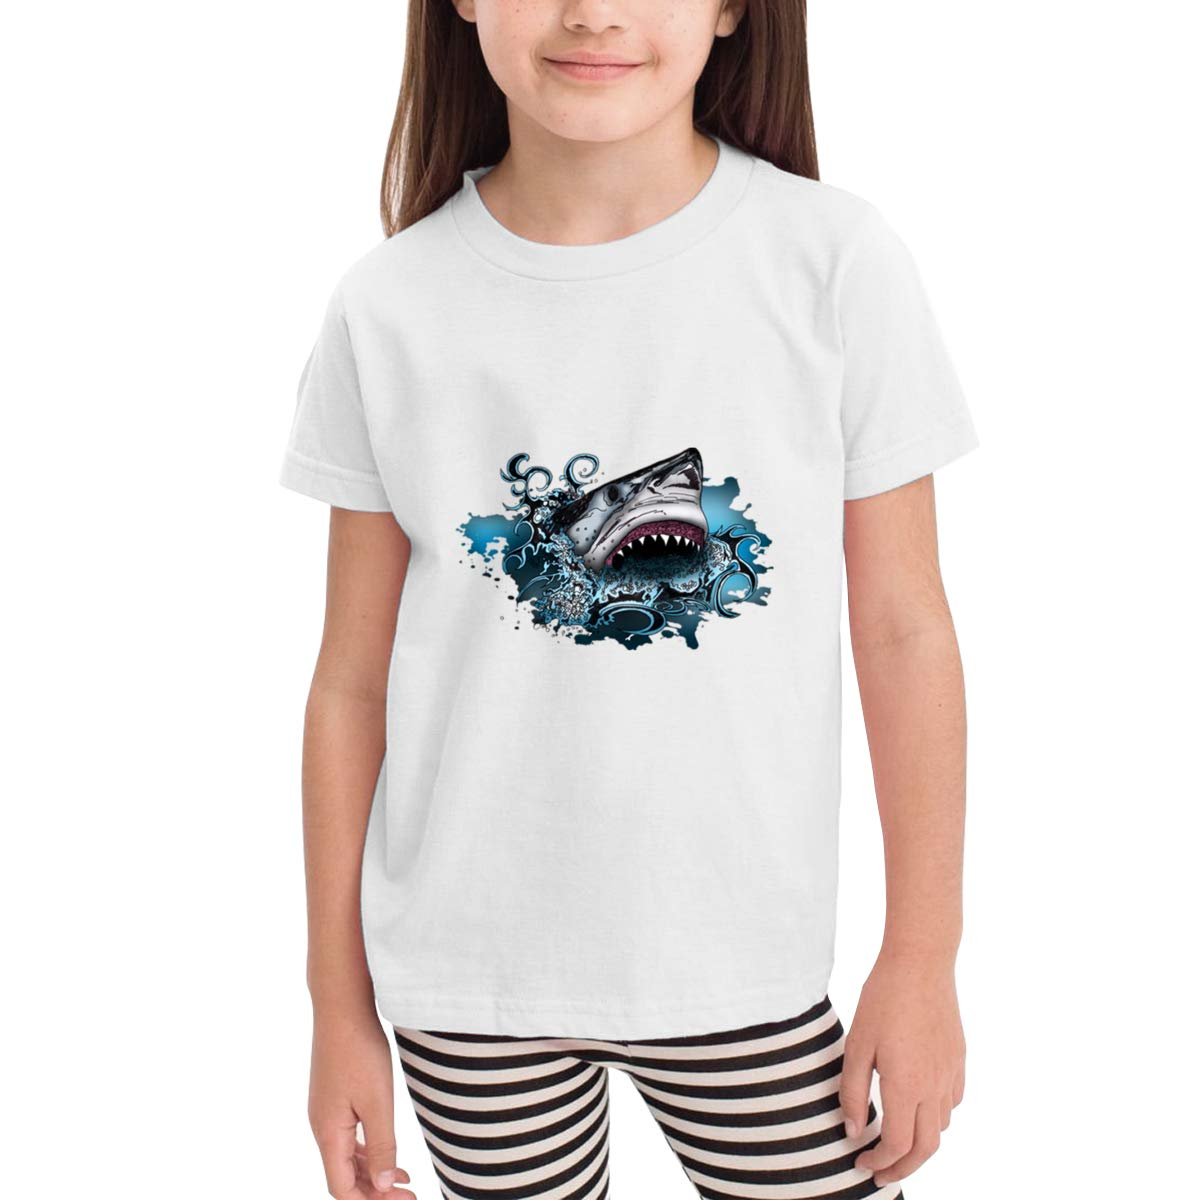 Shark Attack 100/% Cotton Toddler Baby Boys Girls Kids Short Sleeve T Shirt Top Tee Clothes 2-6 T